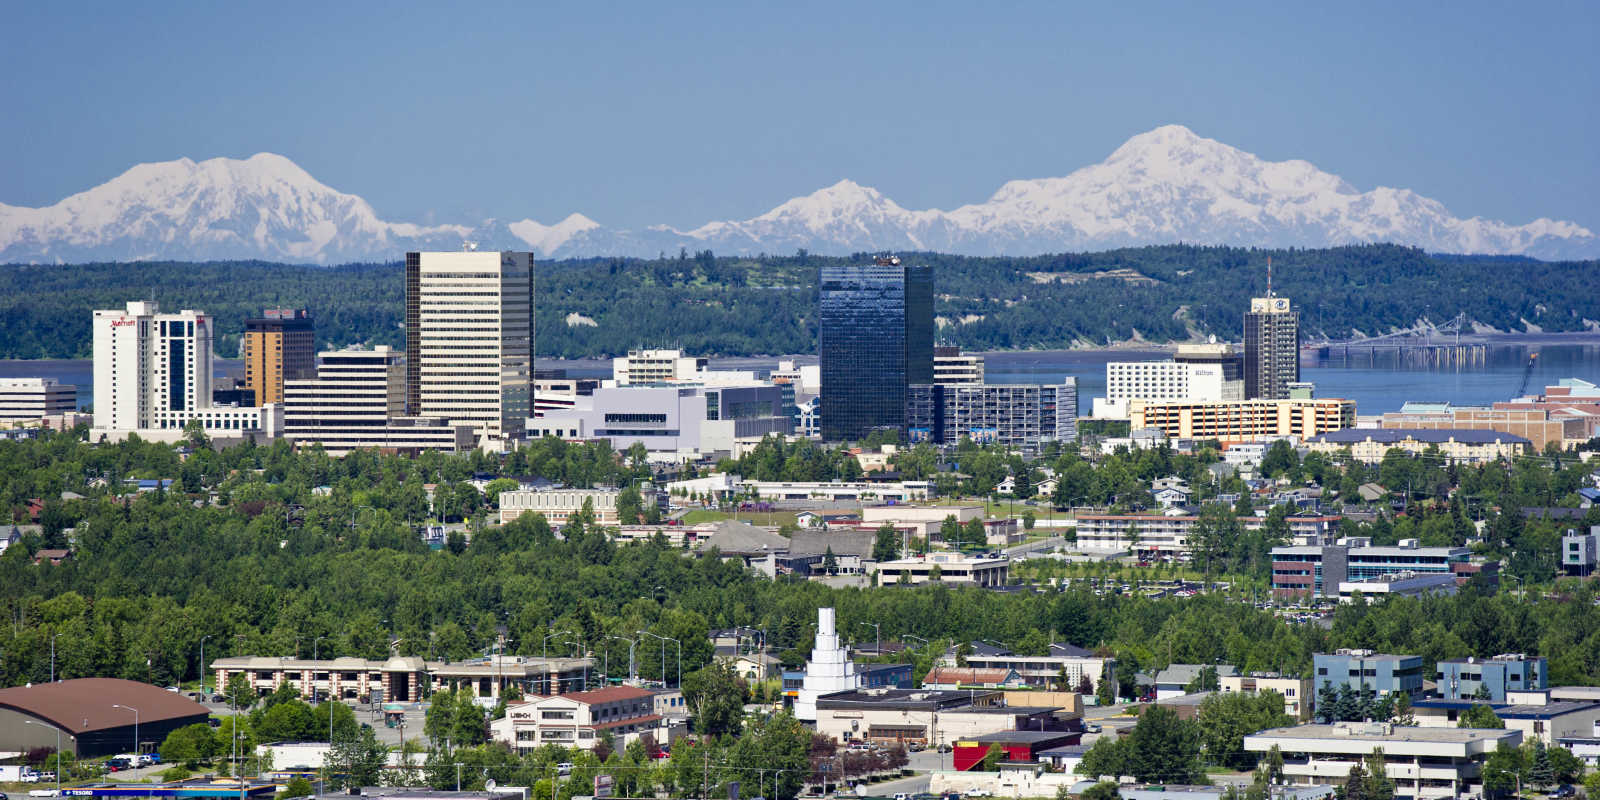 Anchorage skyline with Denali and other Alaska range peaks